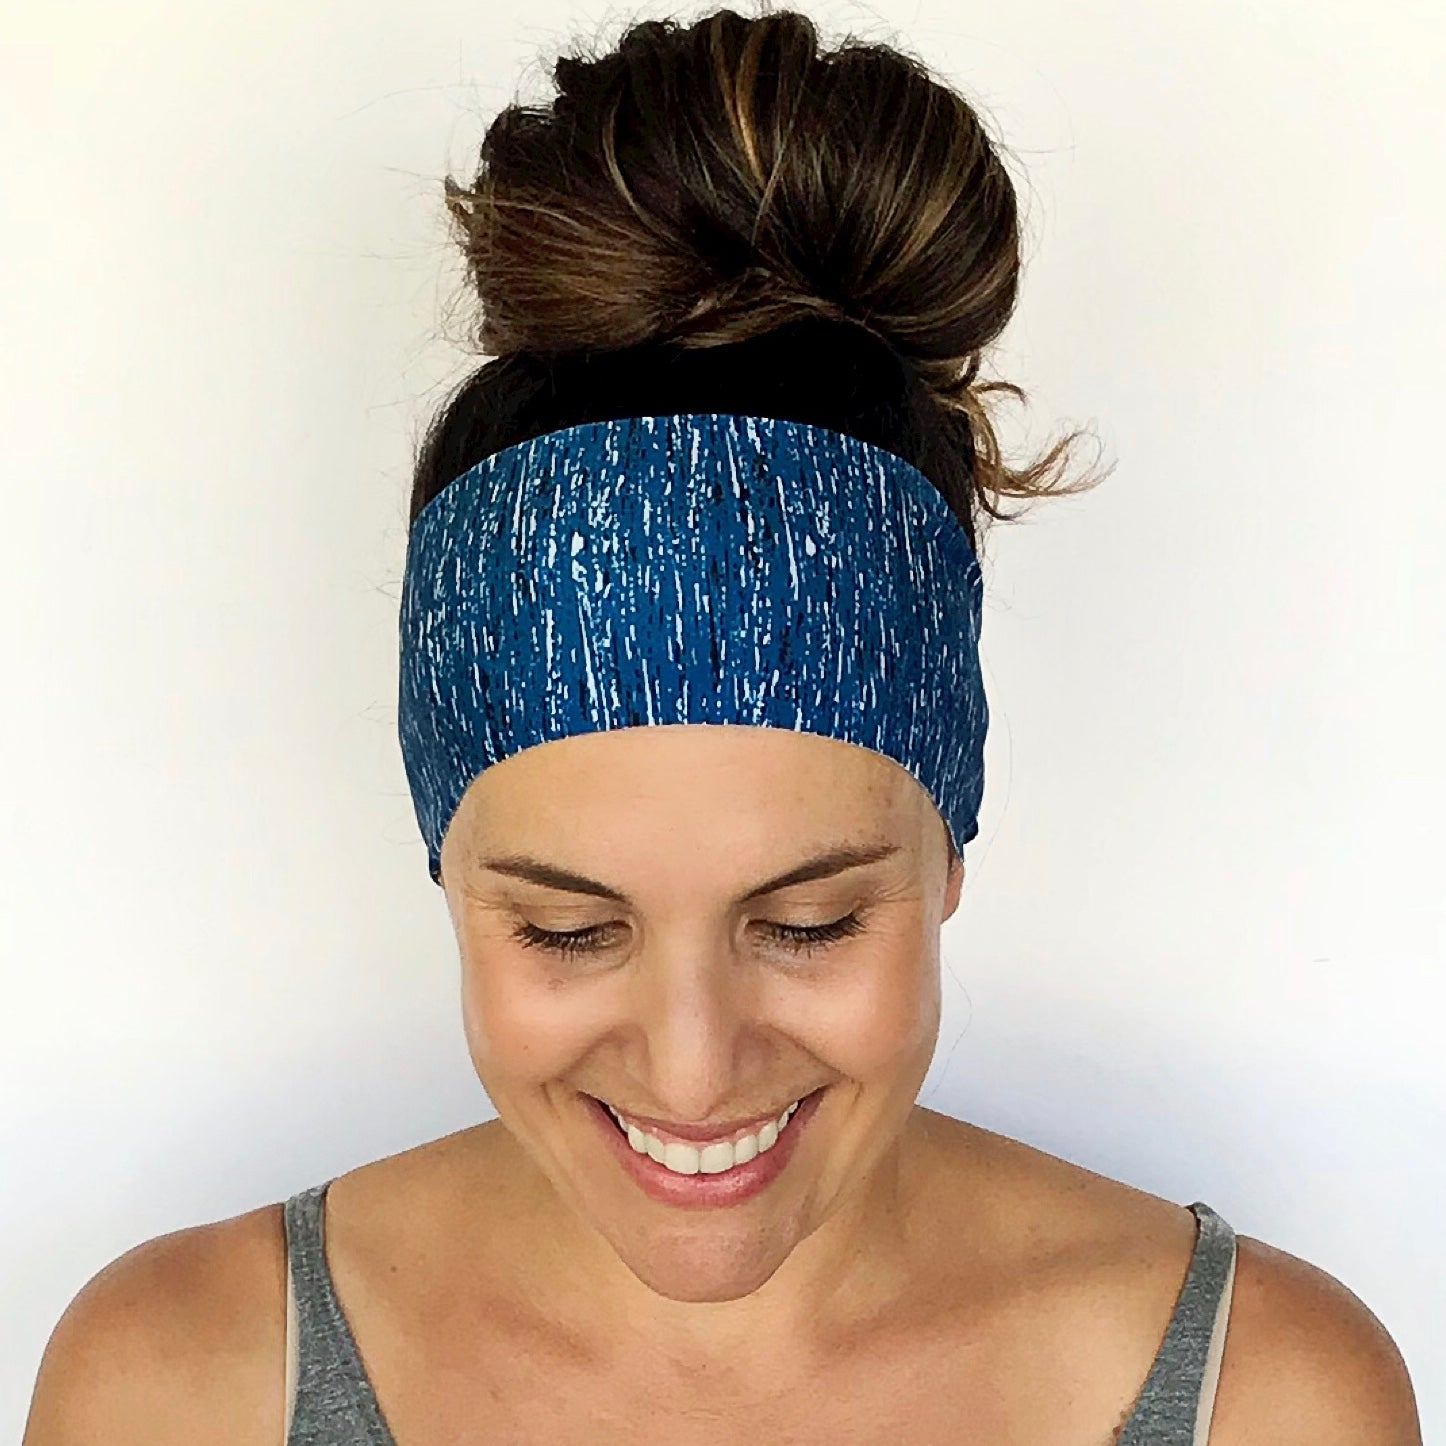 Trekking Workout Headband